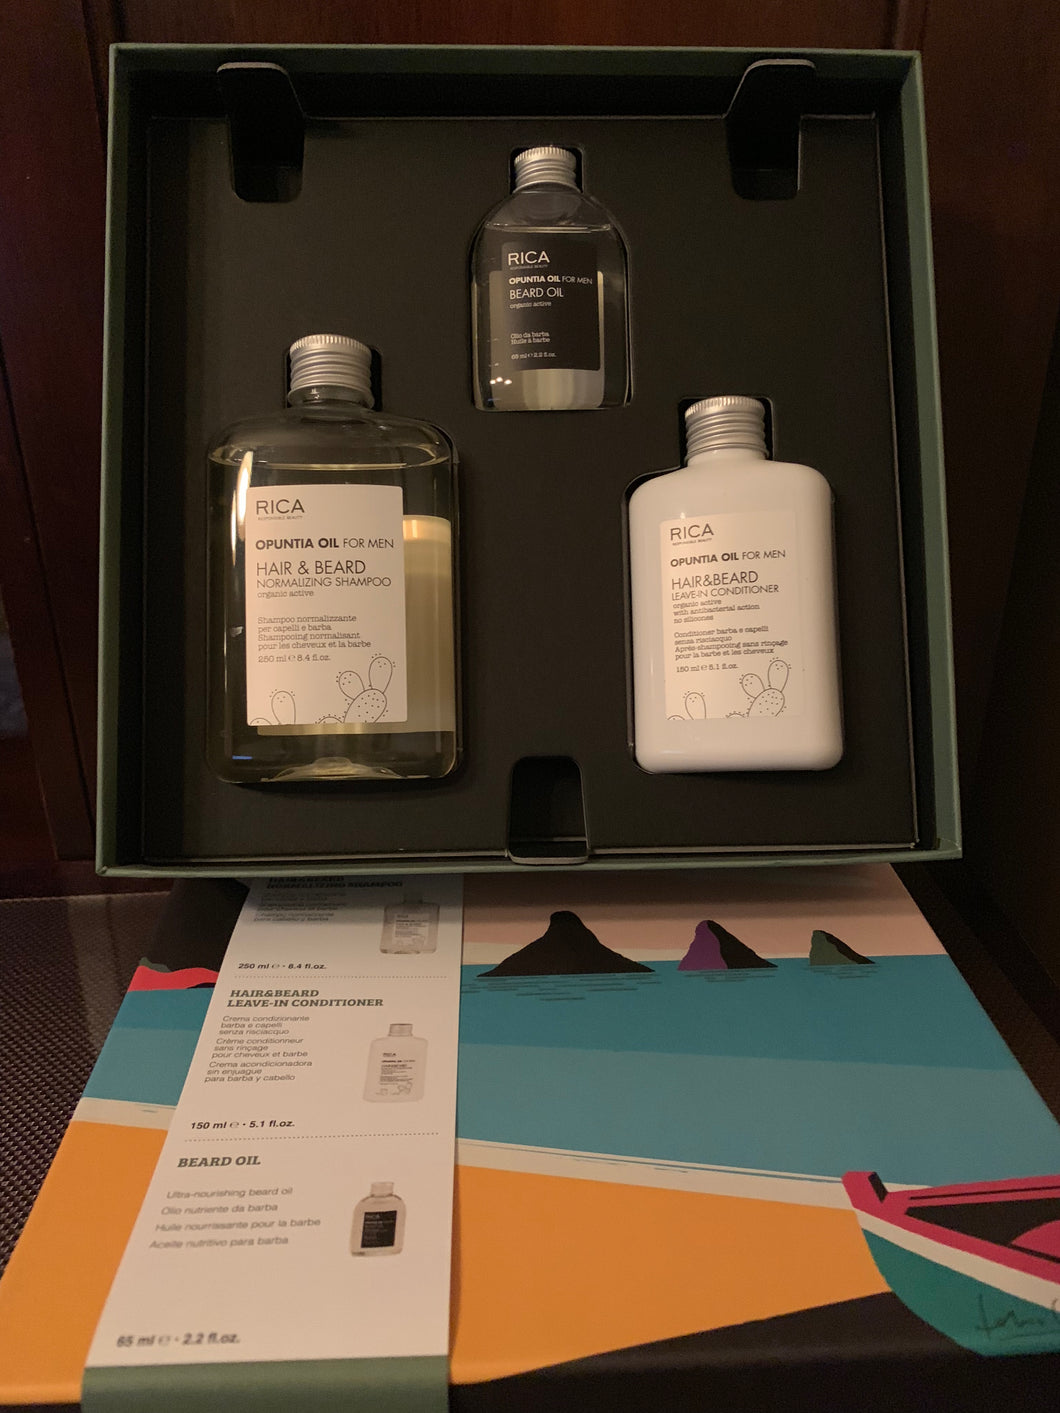 RICA Opuntia Oil Gift set for him...